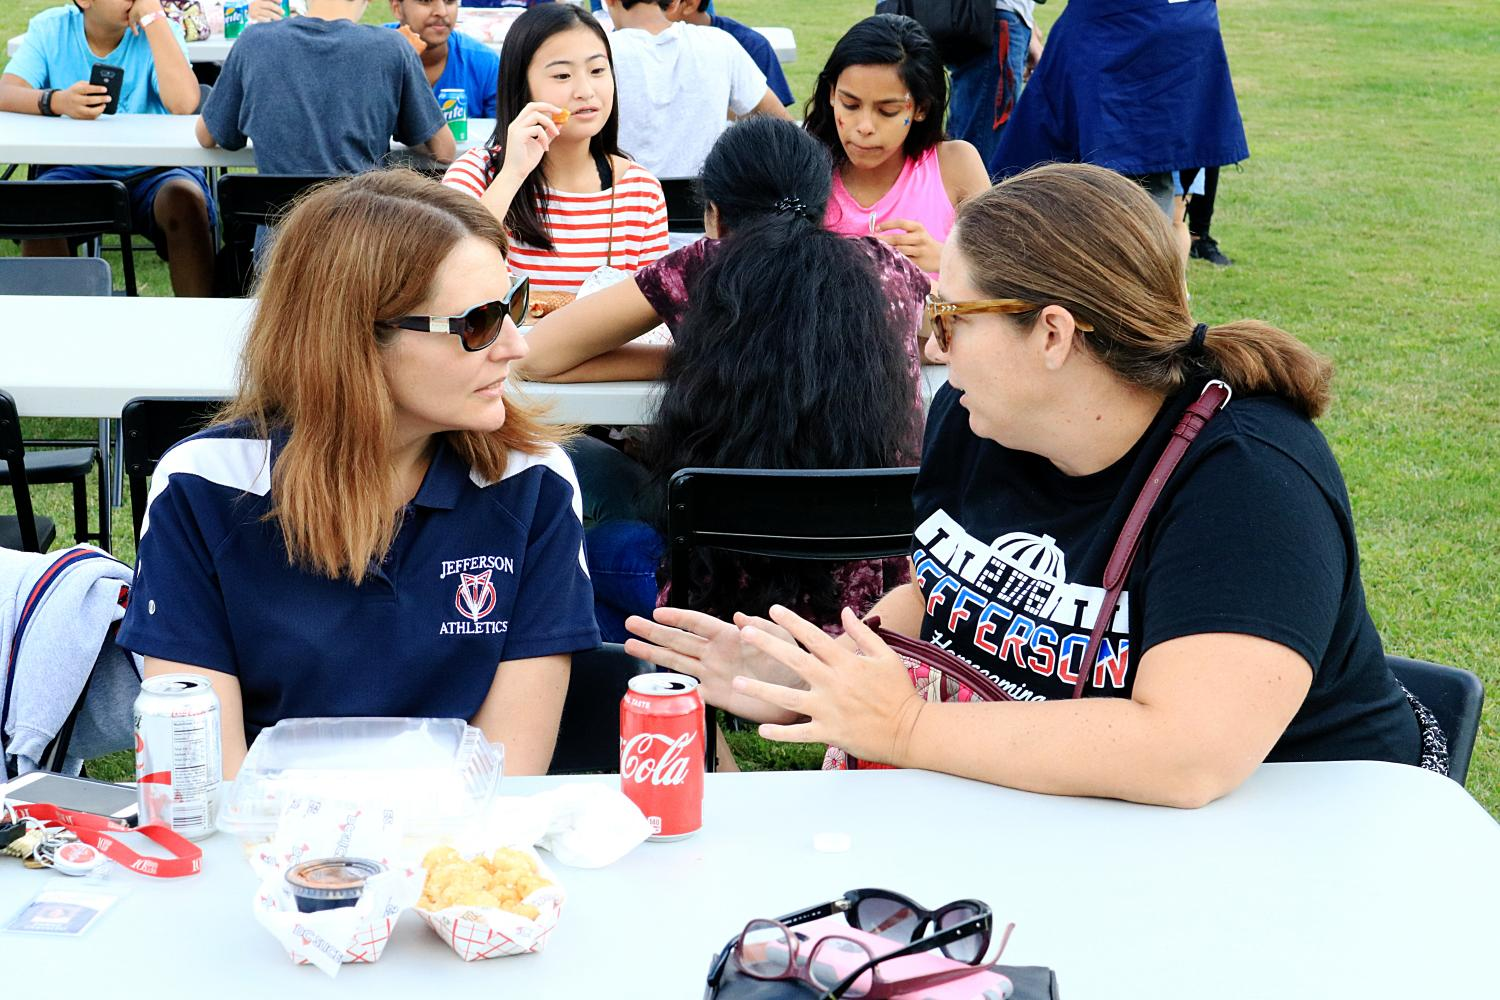 From left to right: Teachers Denise Castaldo and Marianne Razzino chat alongside other teachers and students.